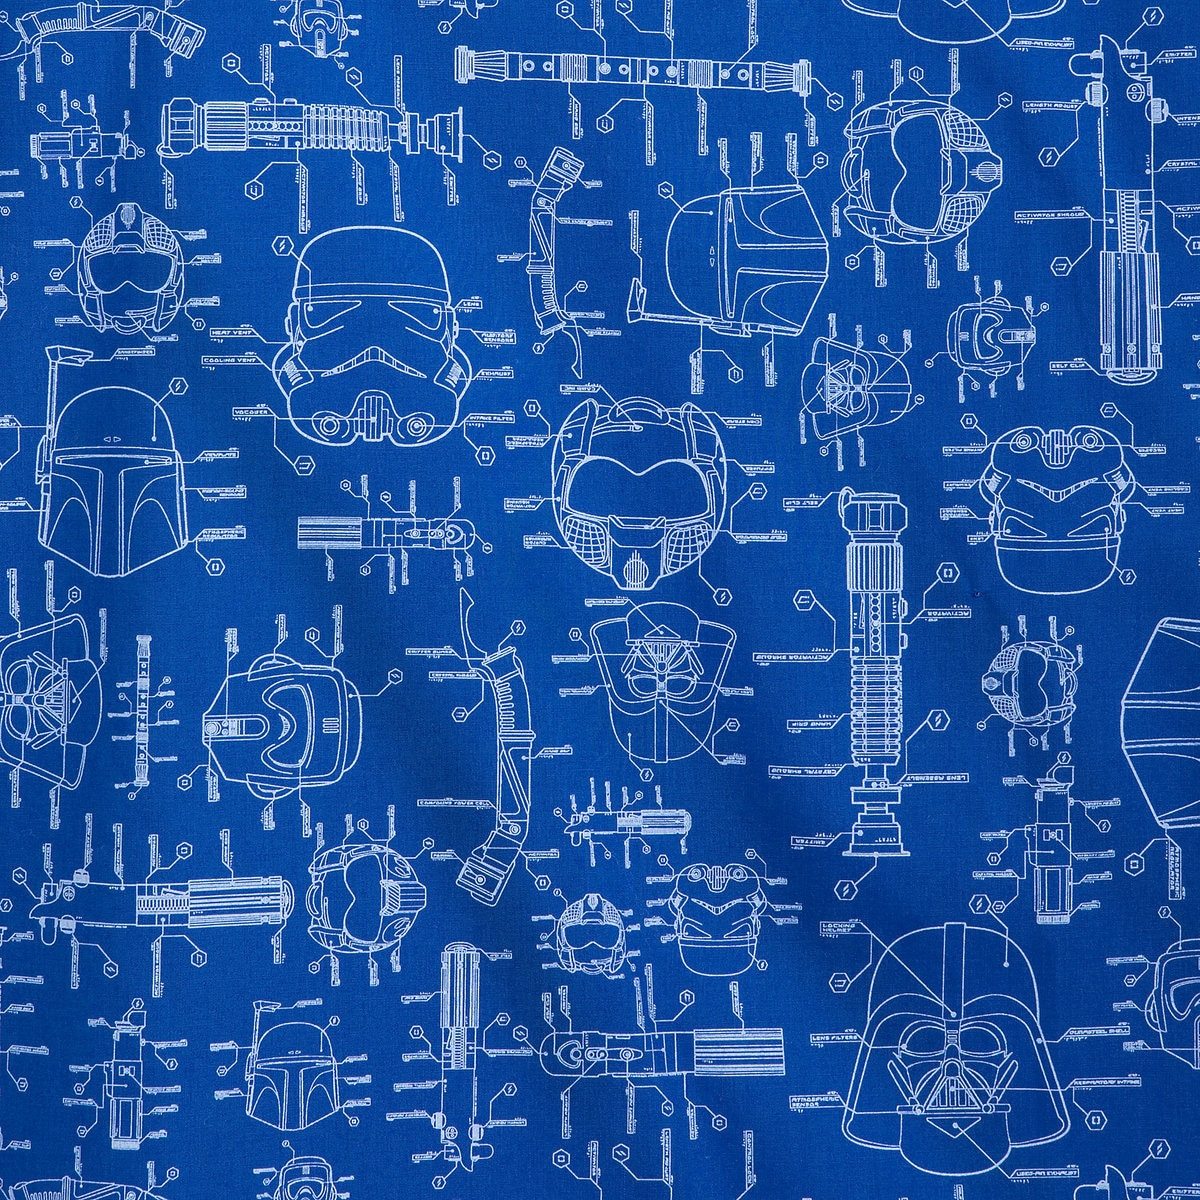 Bedwelming Star Wars Blueprints Woven Shirt for Men | shopDisney &RT96